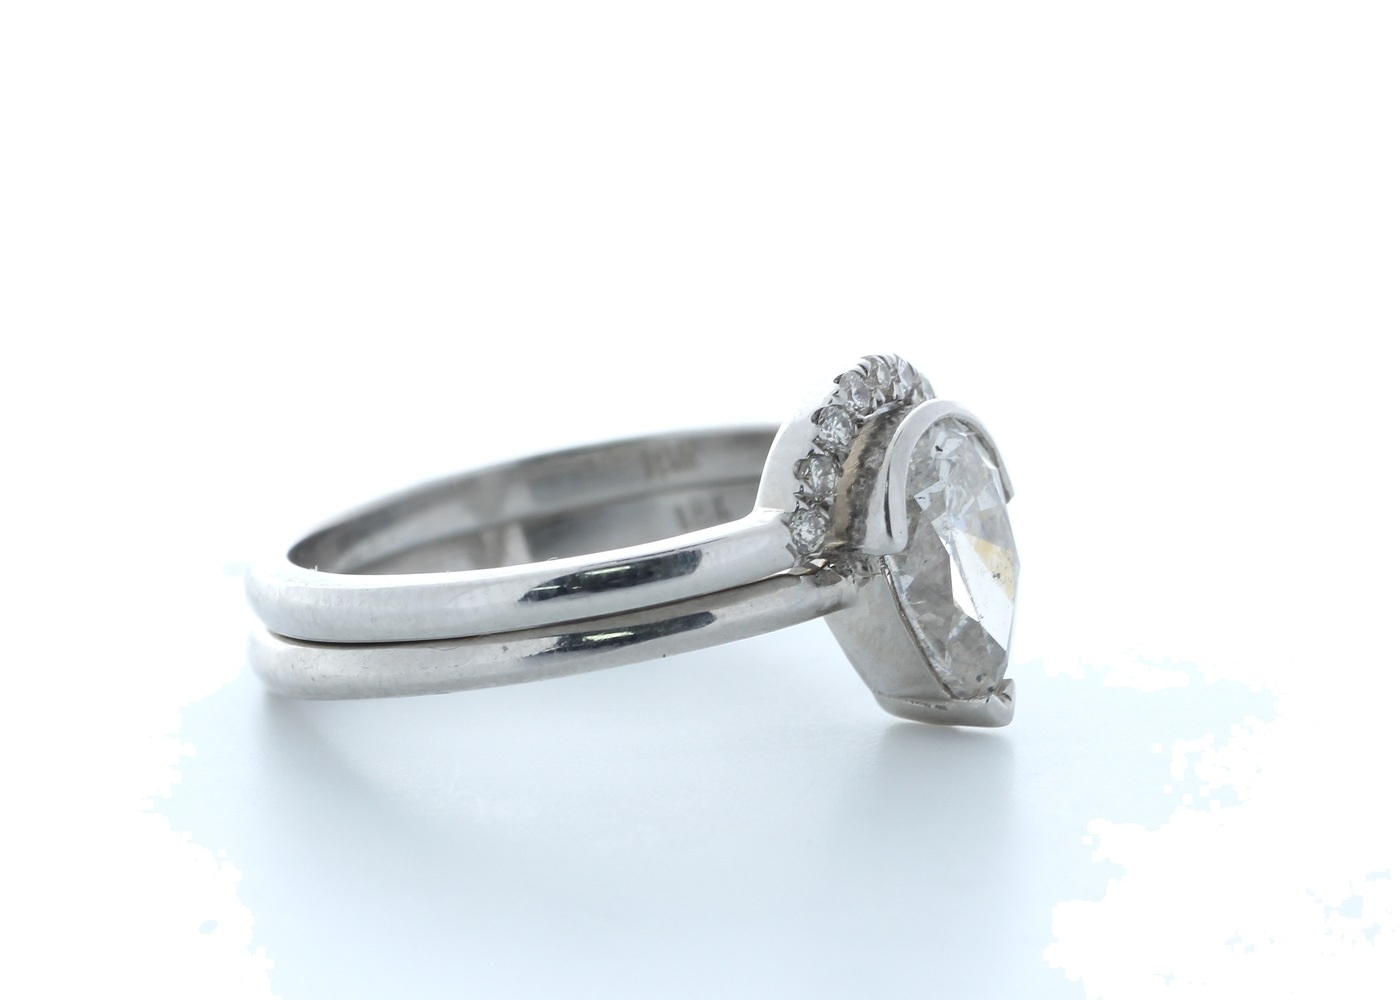 18ct White Gold Pear Shape Diamond Ring With Matching Band 1.16 (1.07) Carats - Image 3 of 4